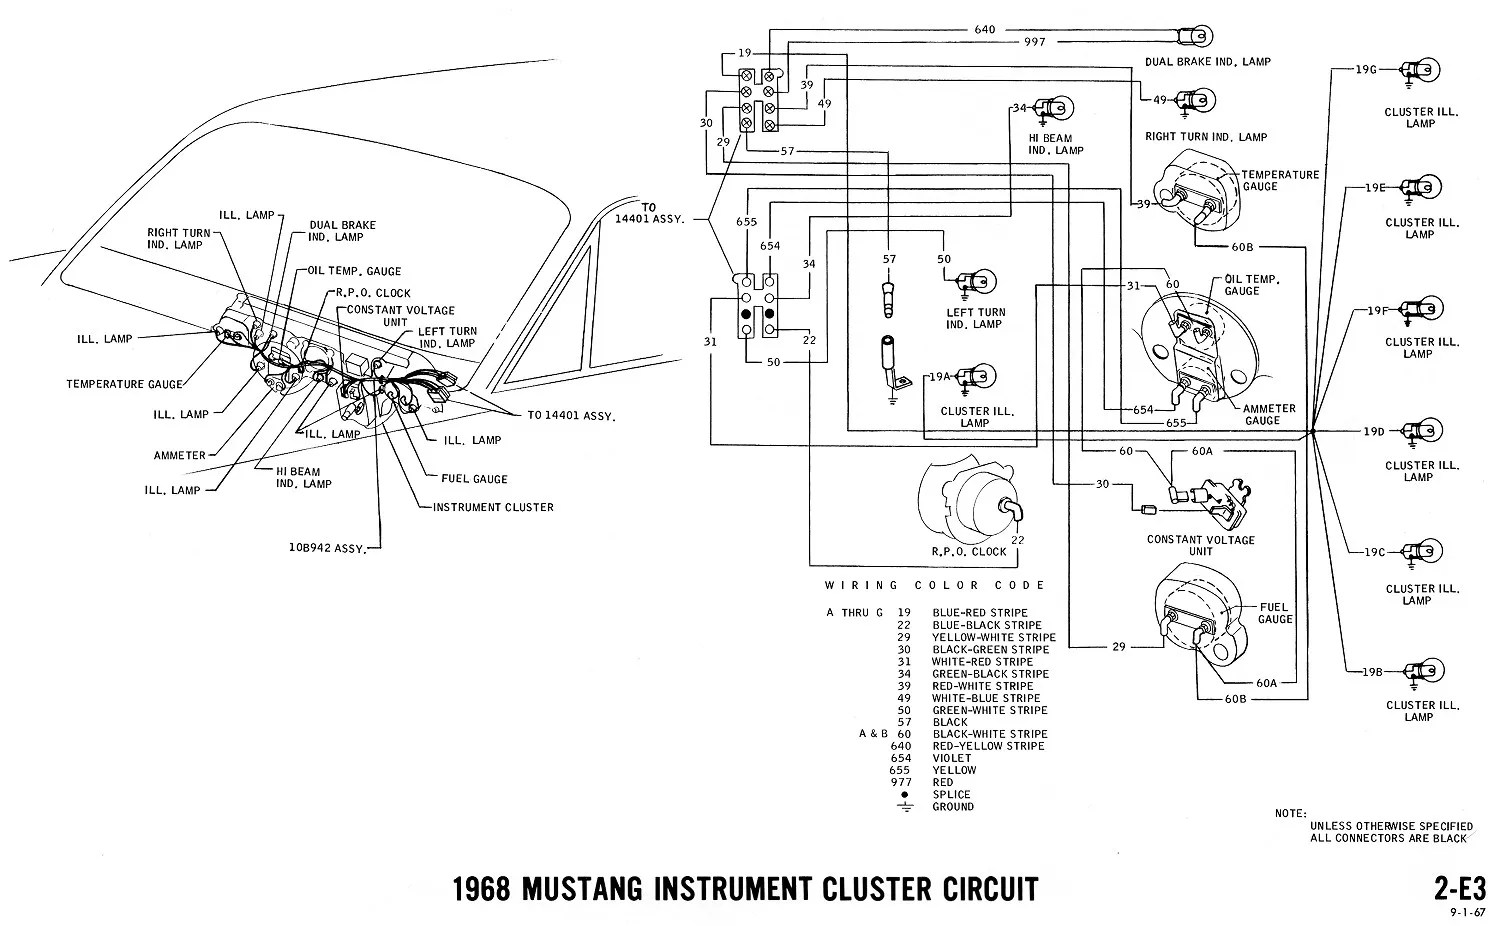 hight resolution of 70 mustang guage cluster wiring harness electrical schematic 1967 ford mustang instrument cluster wiring wiring diagram